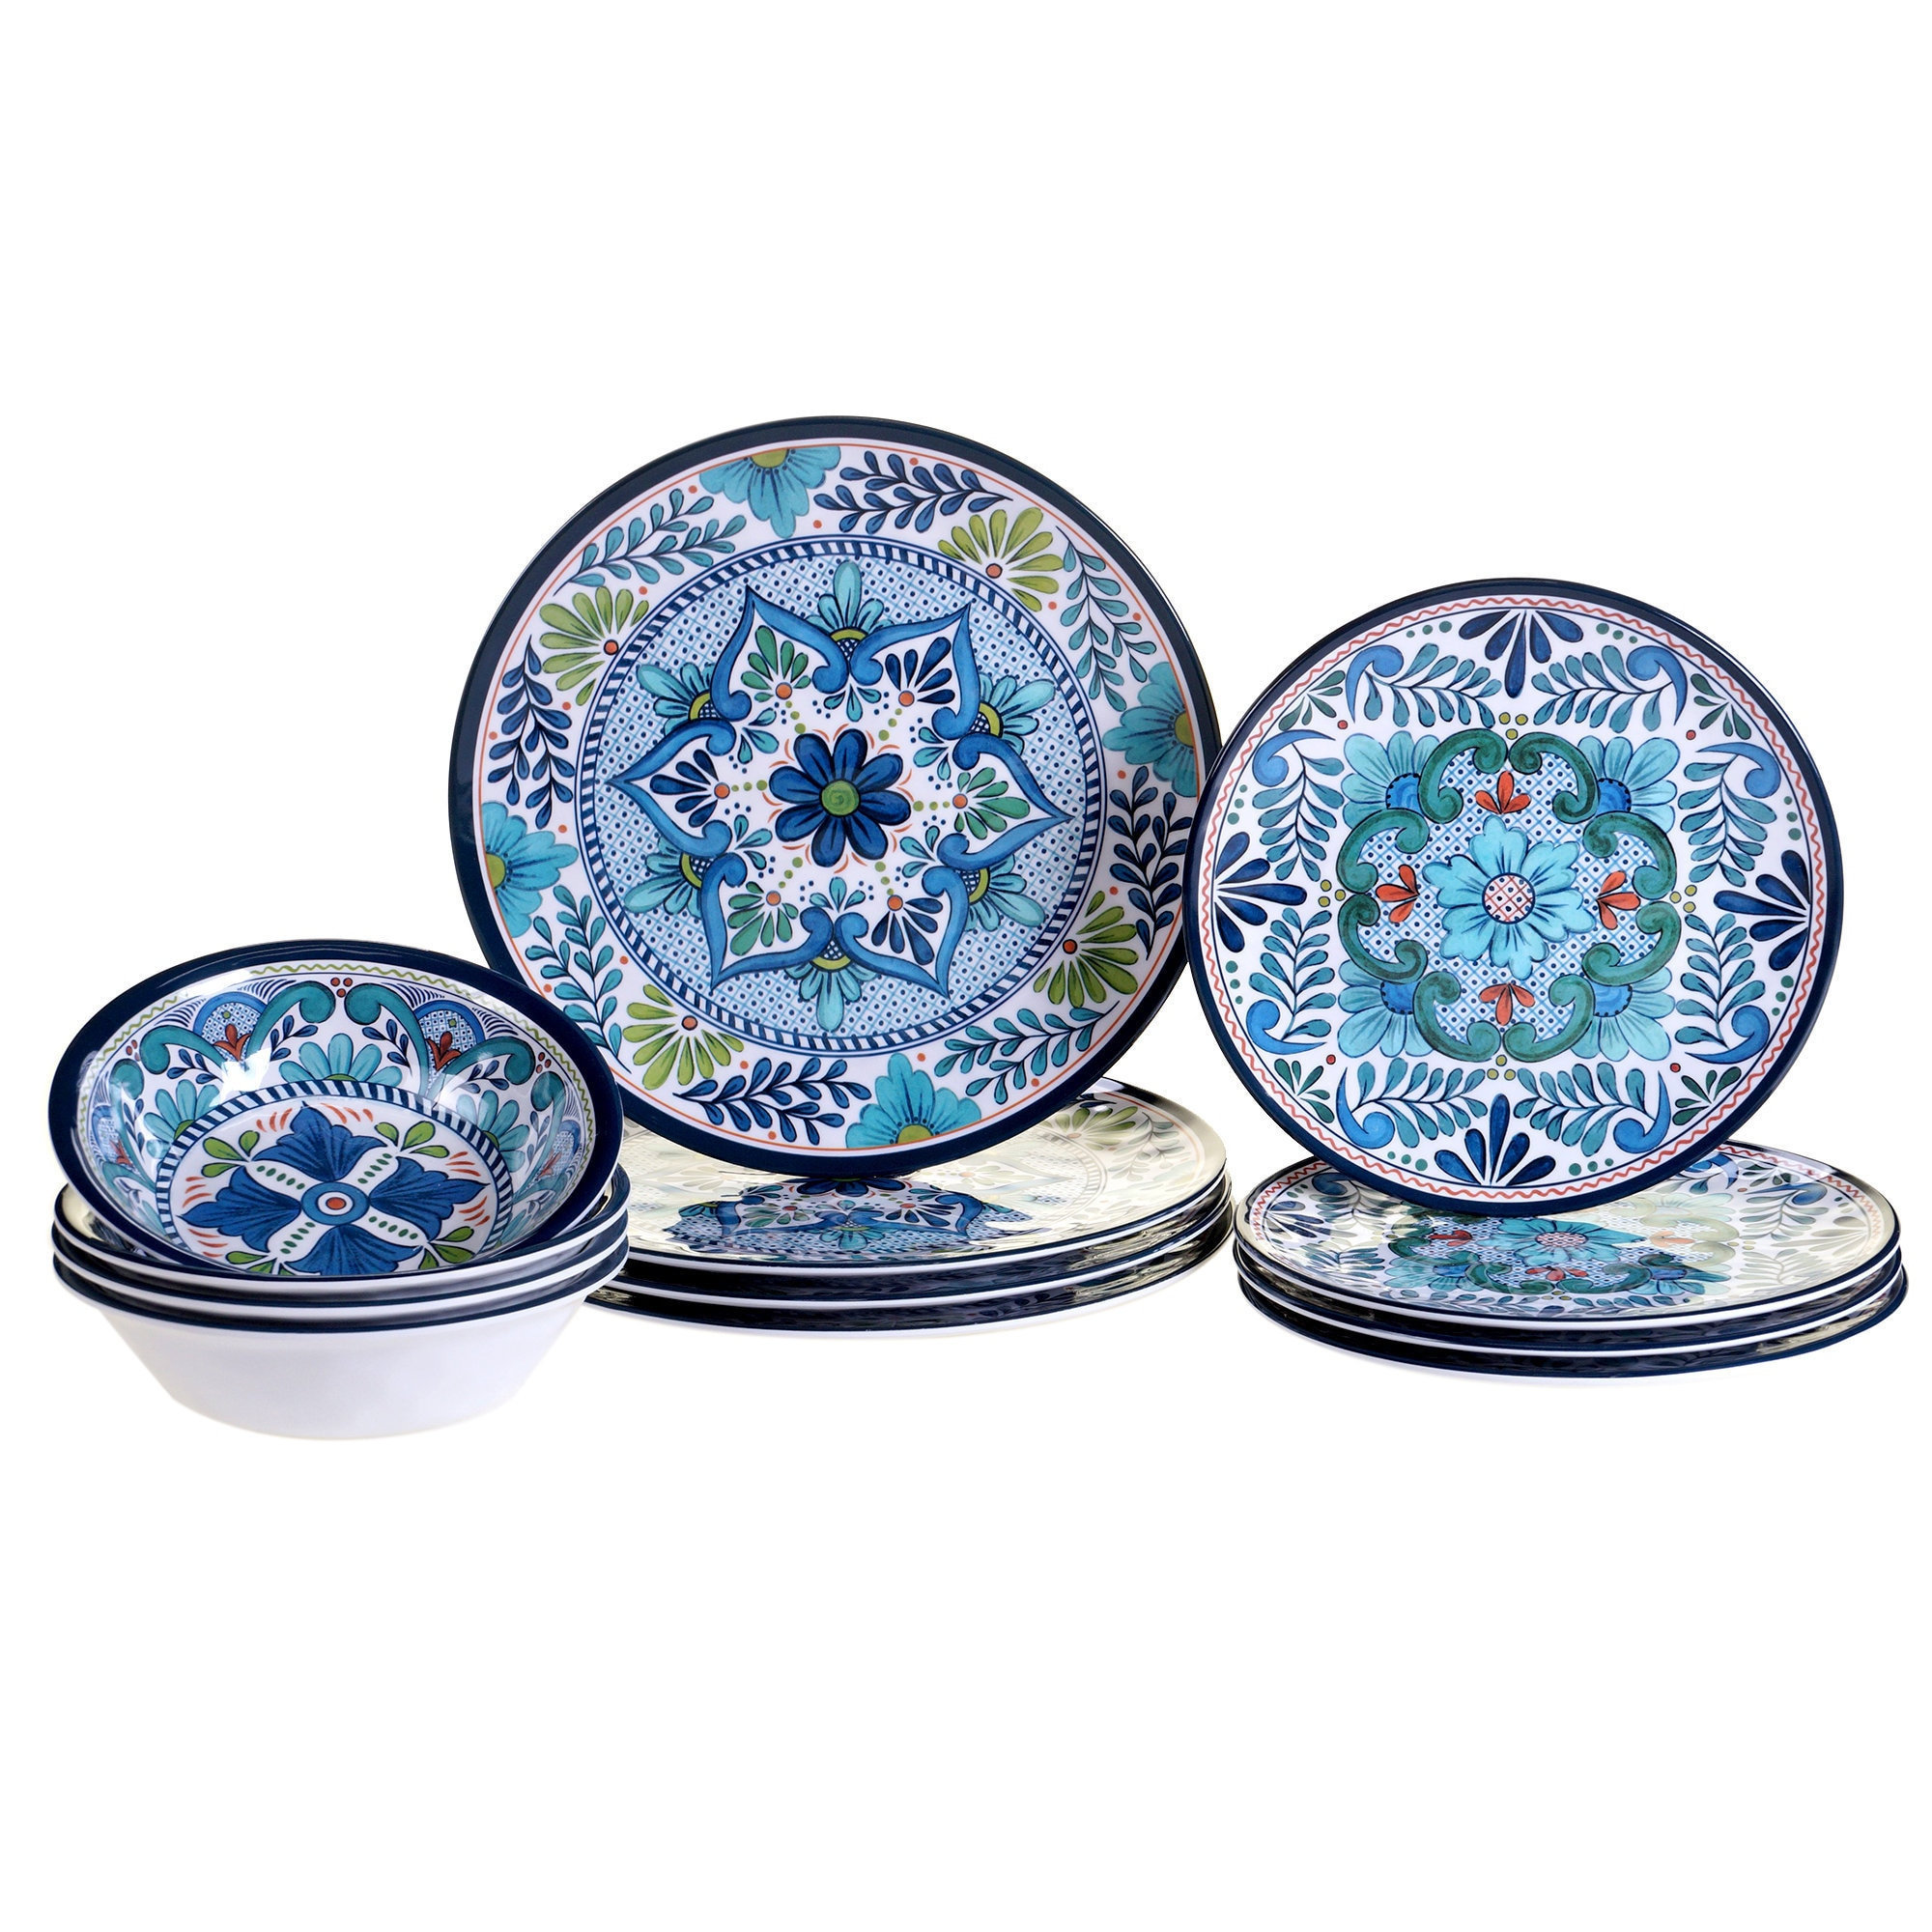 Certified International Talavera Melamine 12-piece Dinnerwar  sc 1 st  Overstock.com & Certified International Nancy Green \u0027Talavera\u0027 Floral White Blue ...